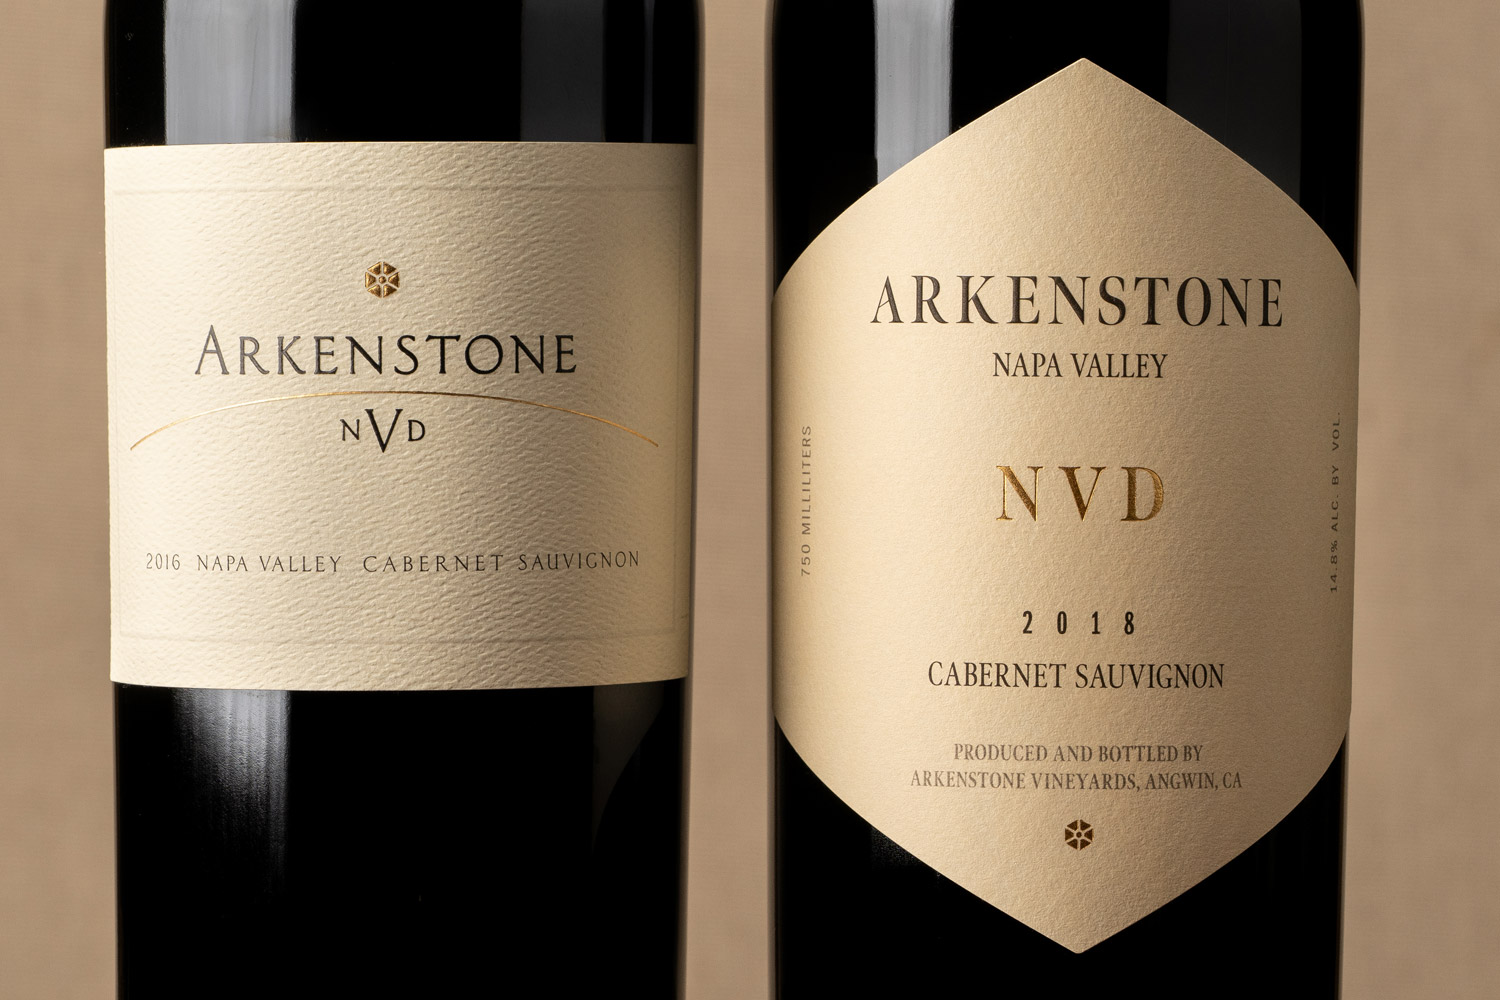 Arkenstone NVD before and after